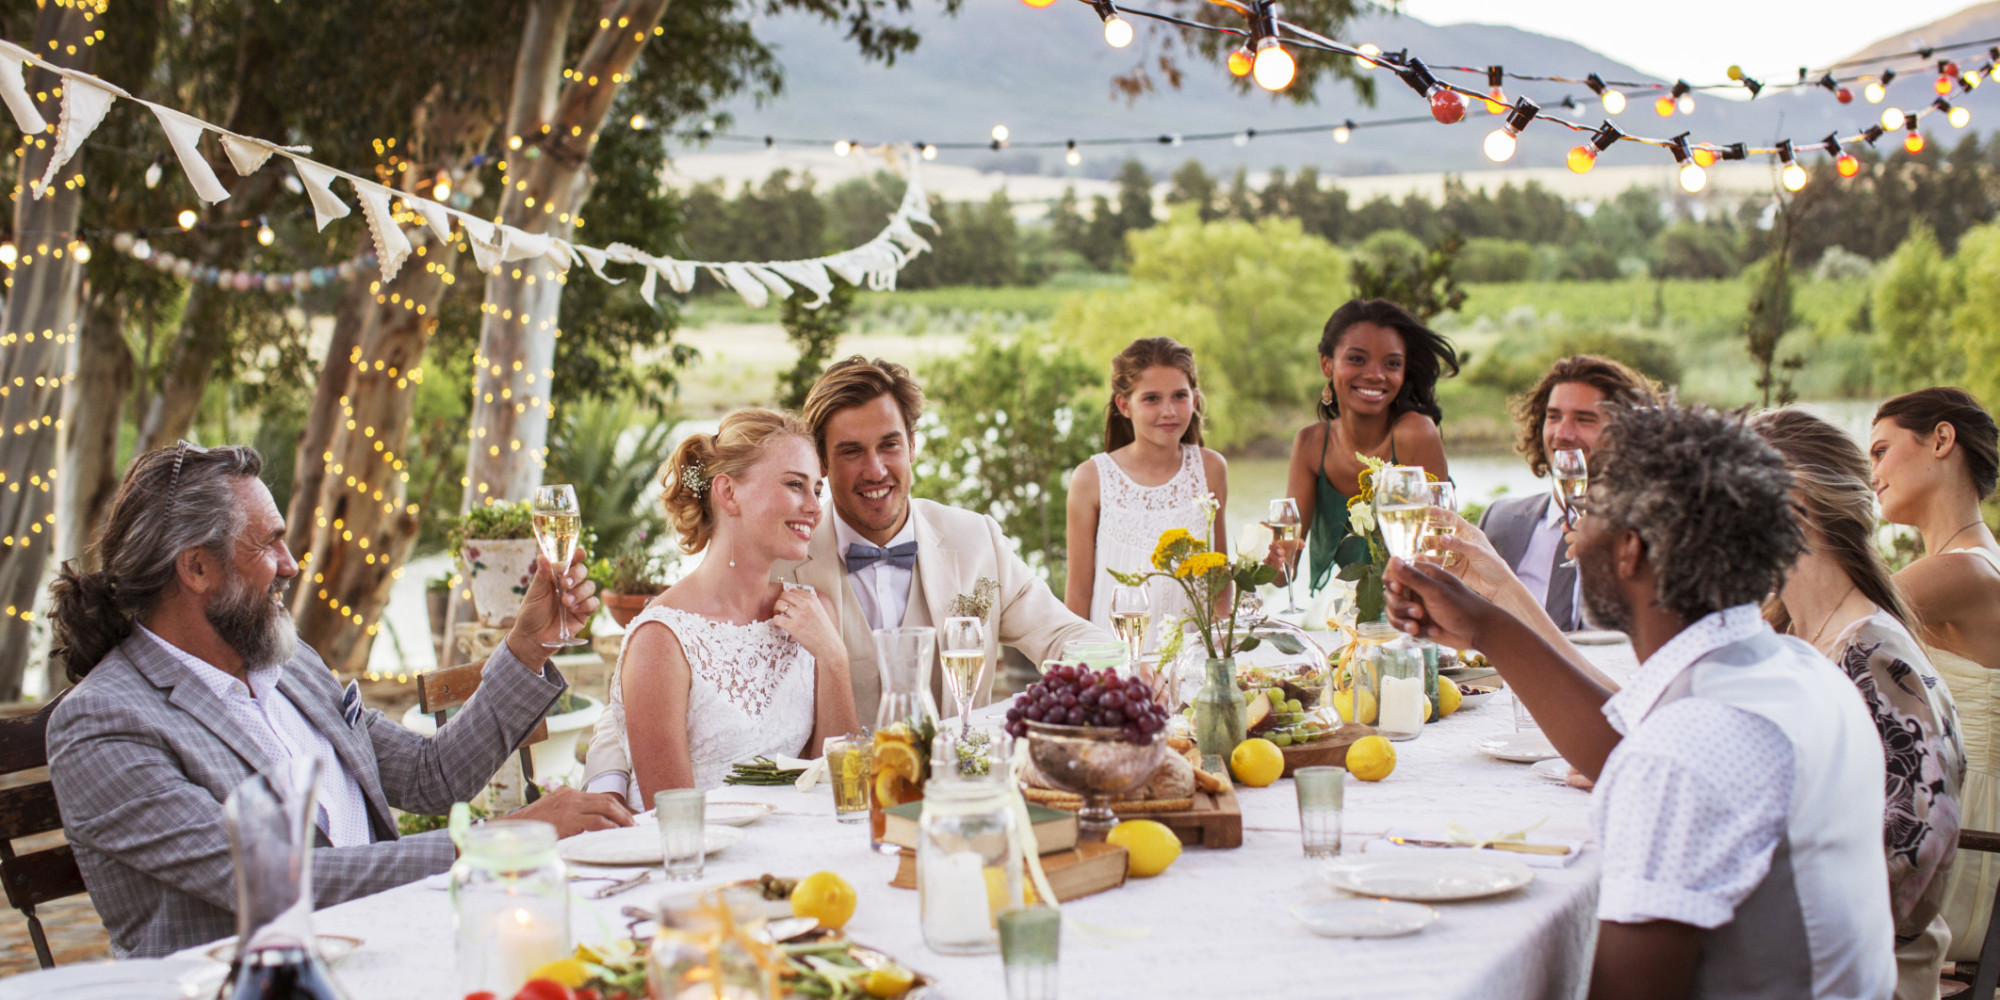 5 Awesome Details For Your 2016 Wedding Huffpost